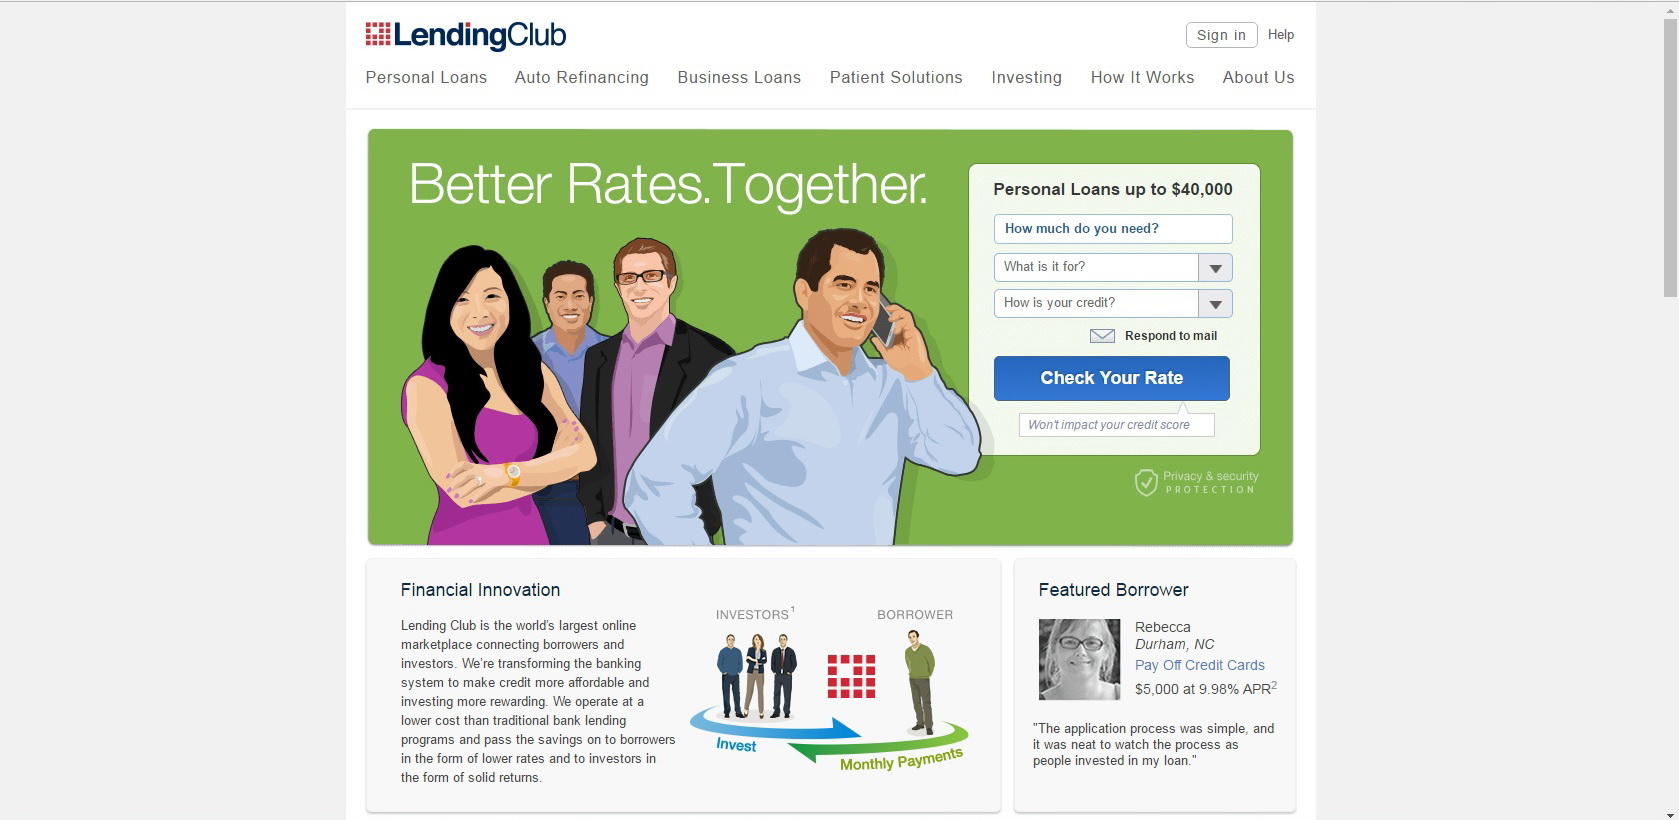 LendingClub Corporation Website Screenshot